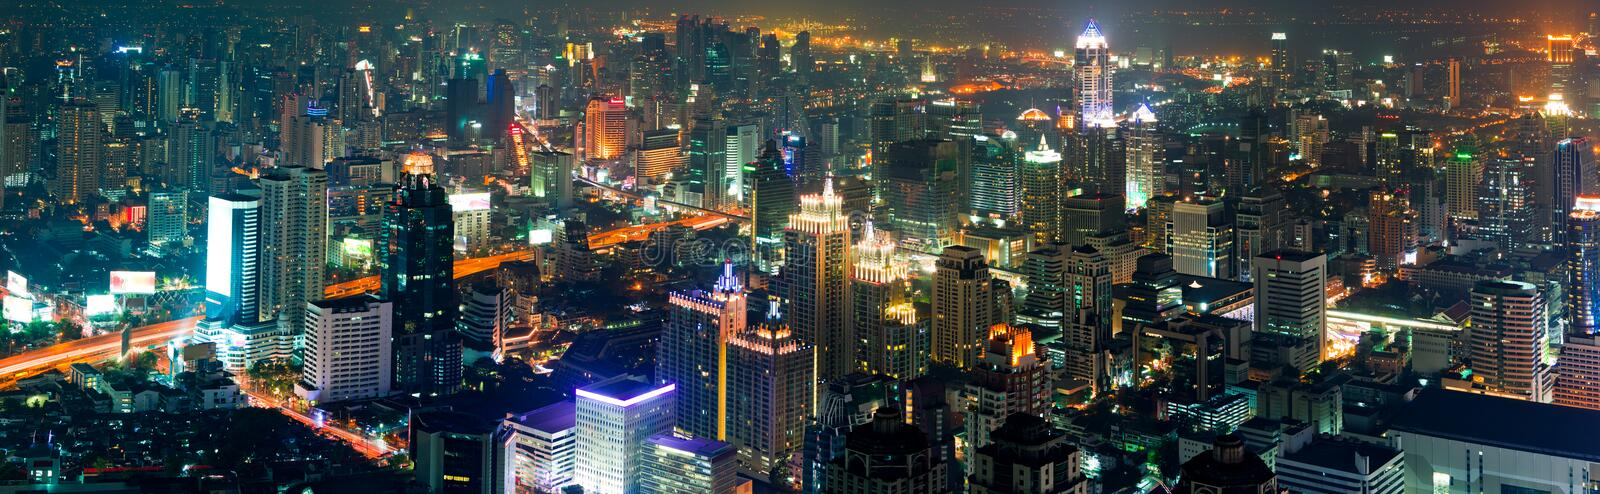 Download Bangkok By Night Royalty Free Stock Image - Image: 17731126